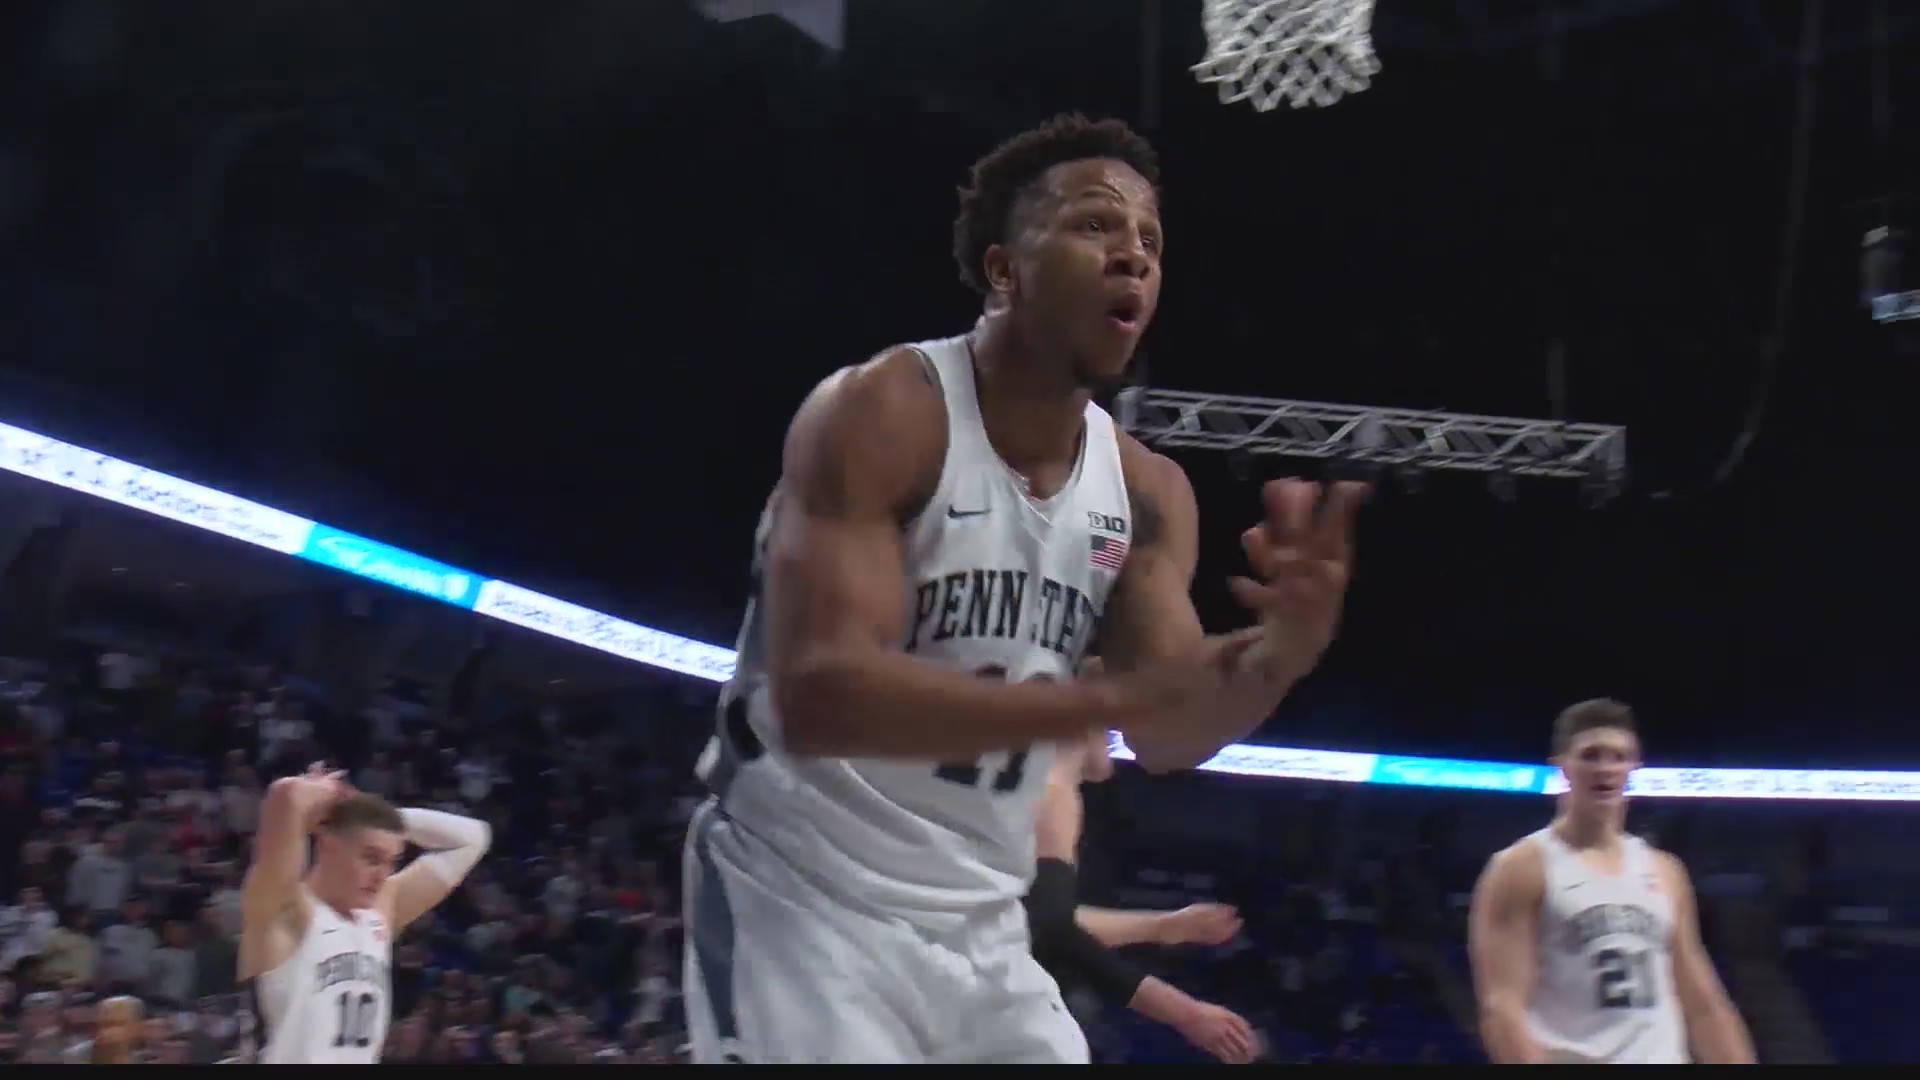 Penn_State_Drops_Overtime_Game_to_No__17_0_20190201044822